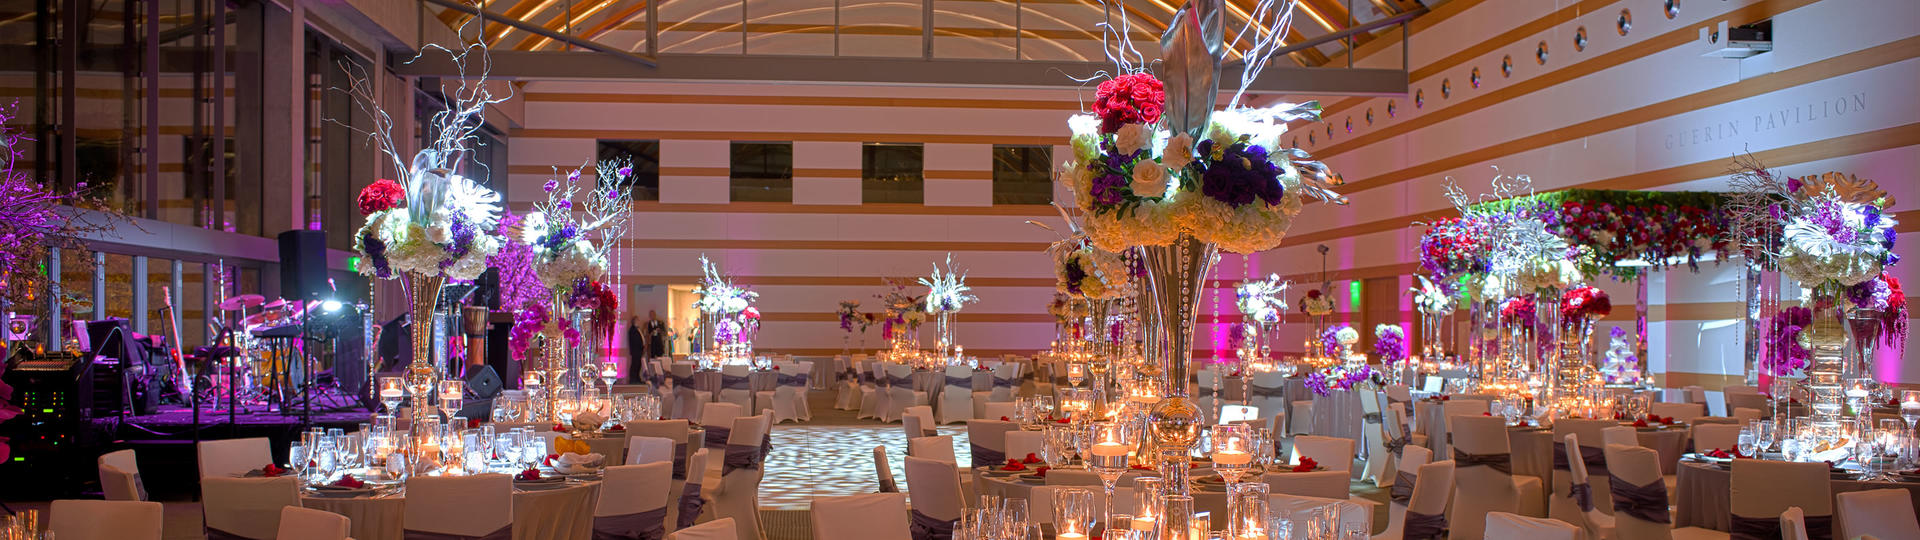 Tables with ornate centerpieces inside Guerin pavilion